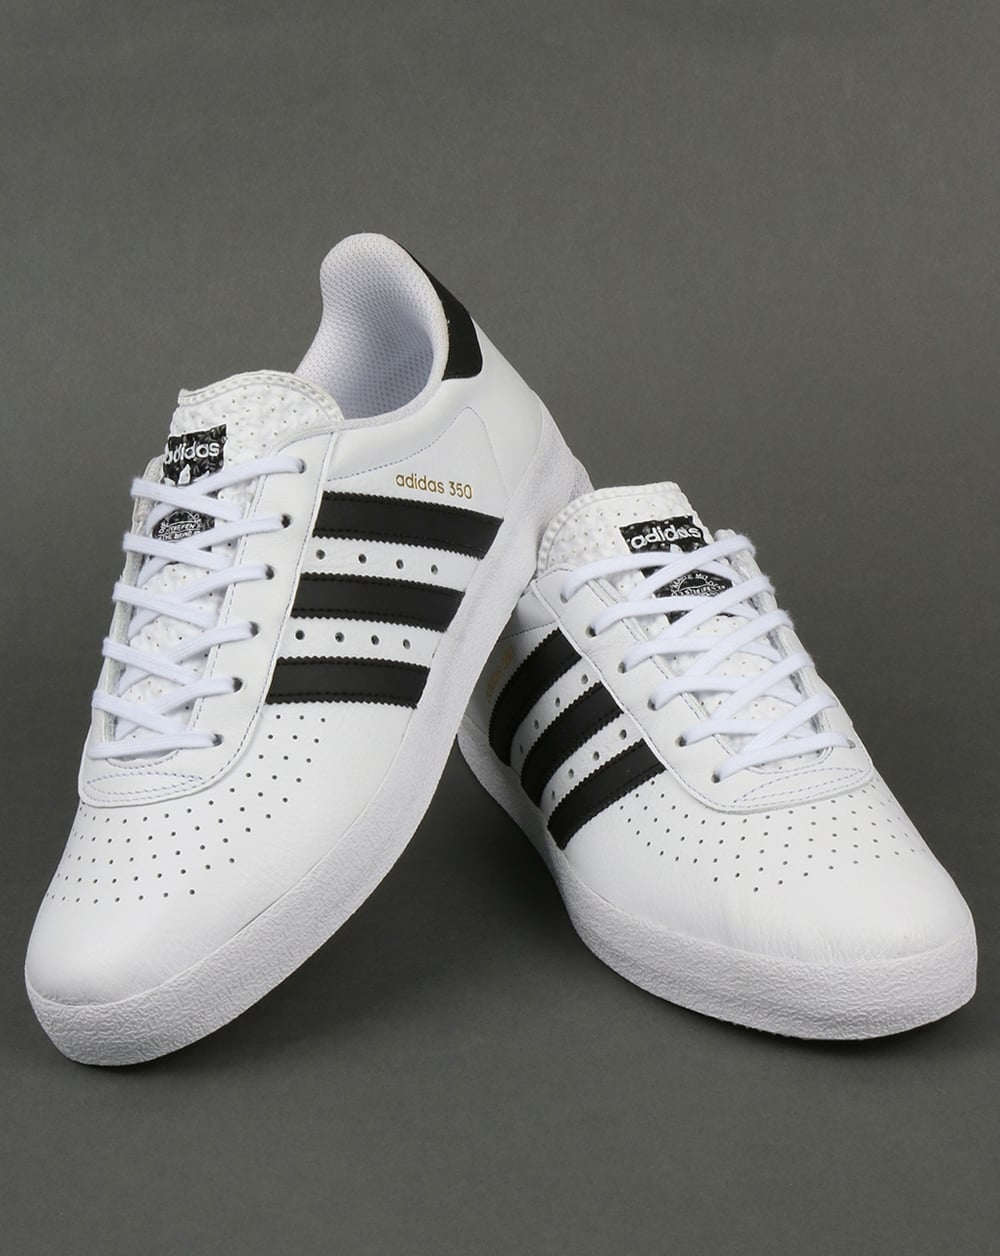 adidas 350 trainers